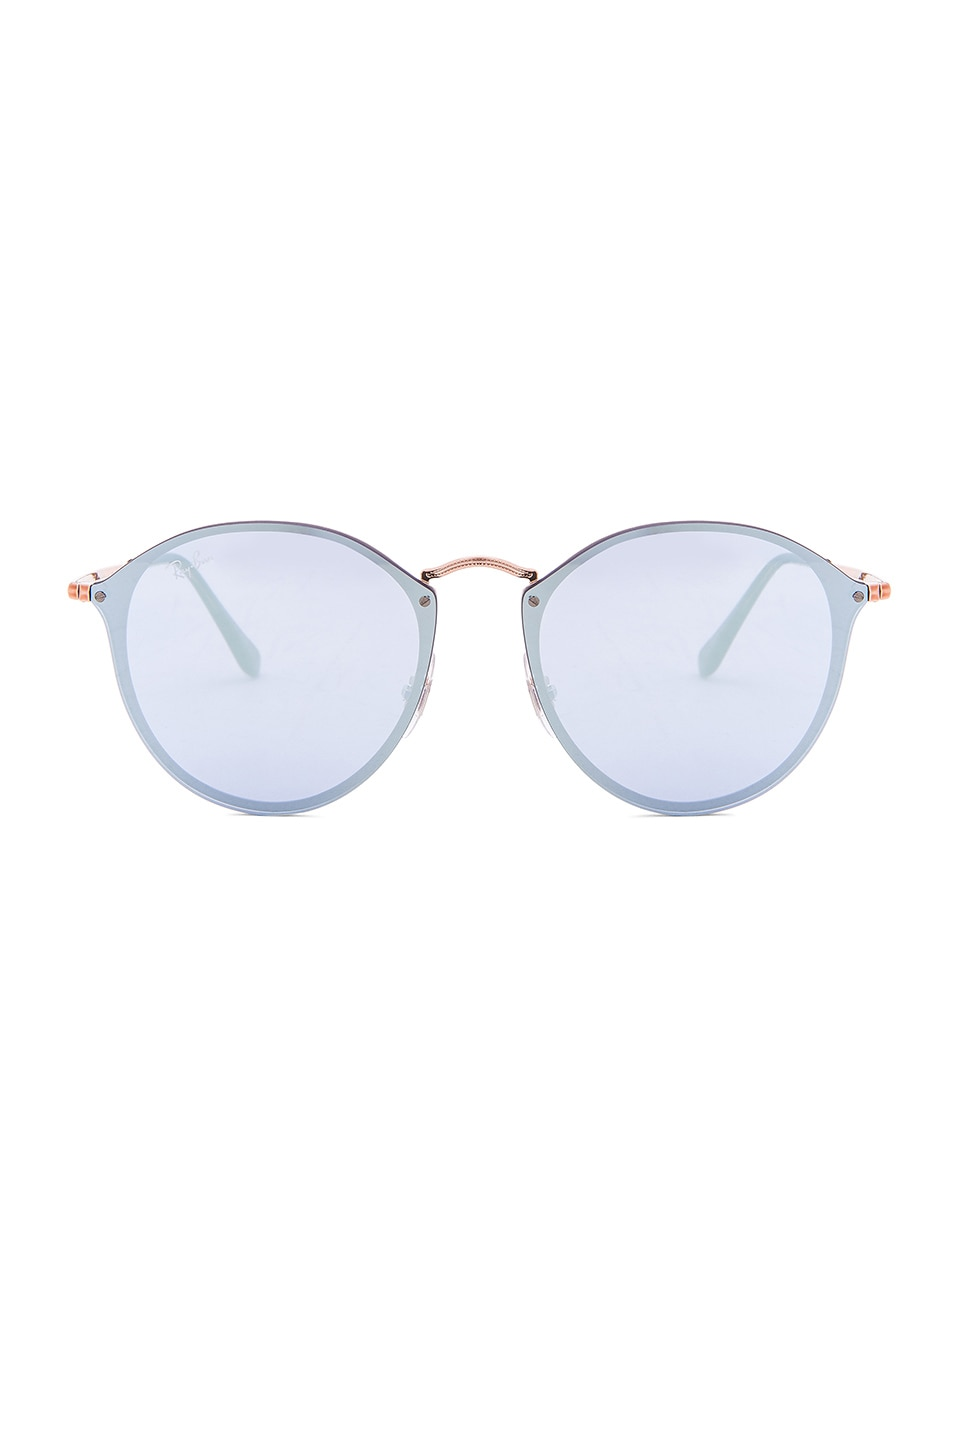 Ray-Ban Blaze Round in Copper & Dark Violet Mirror